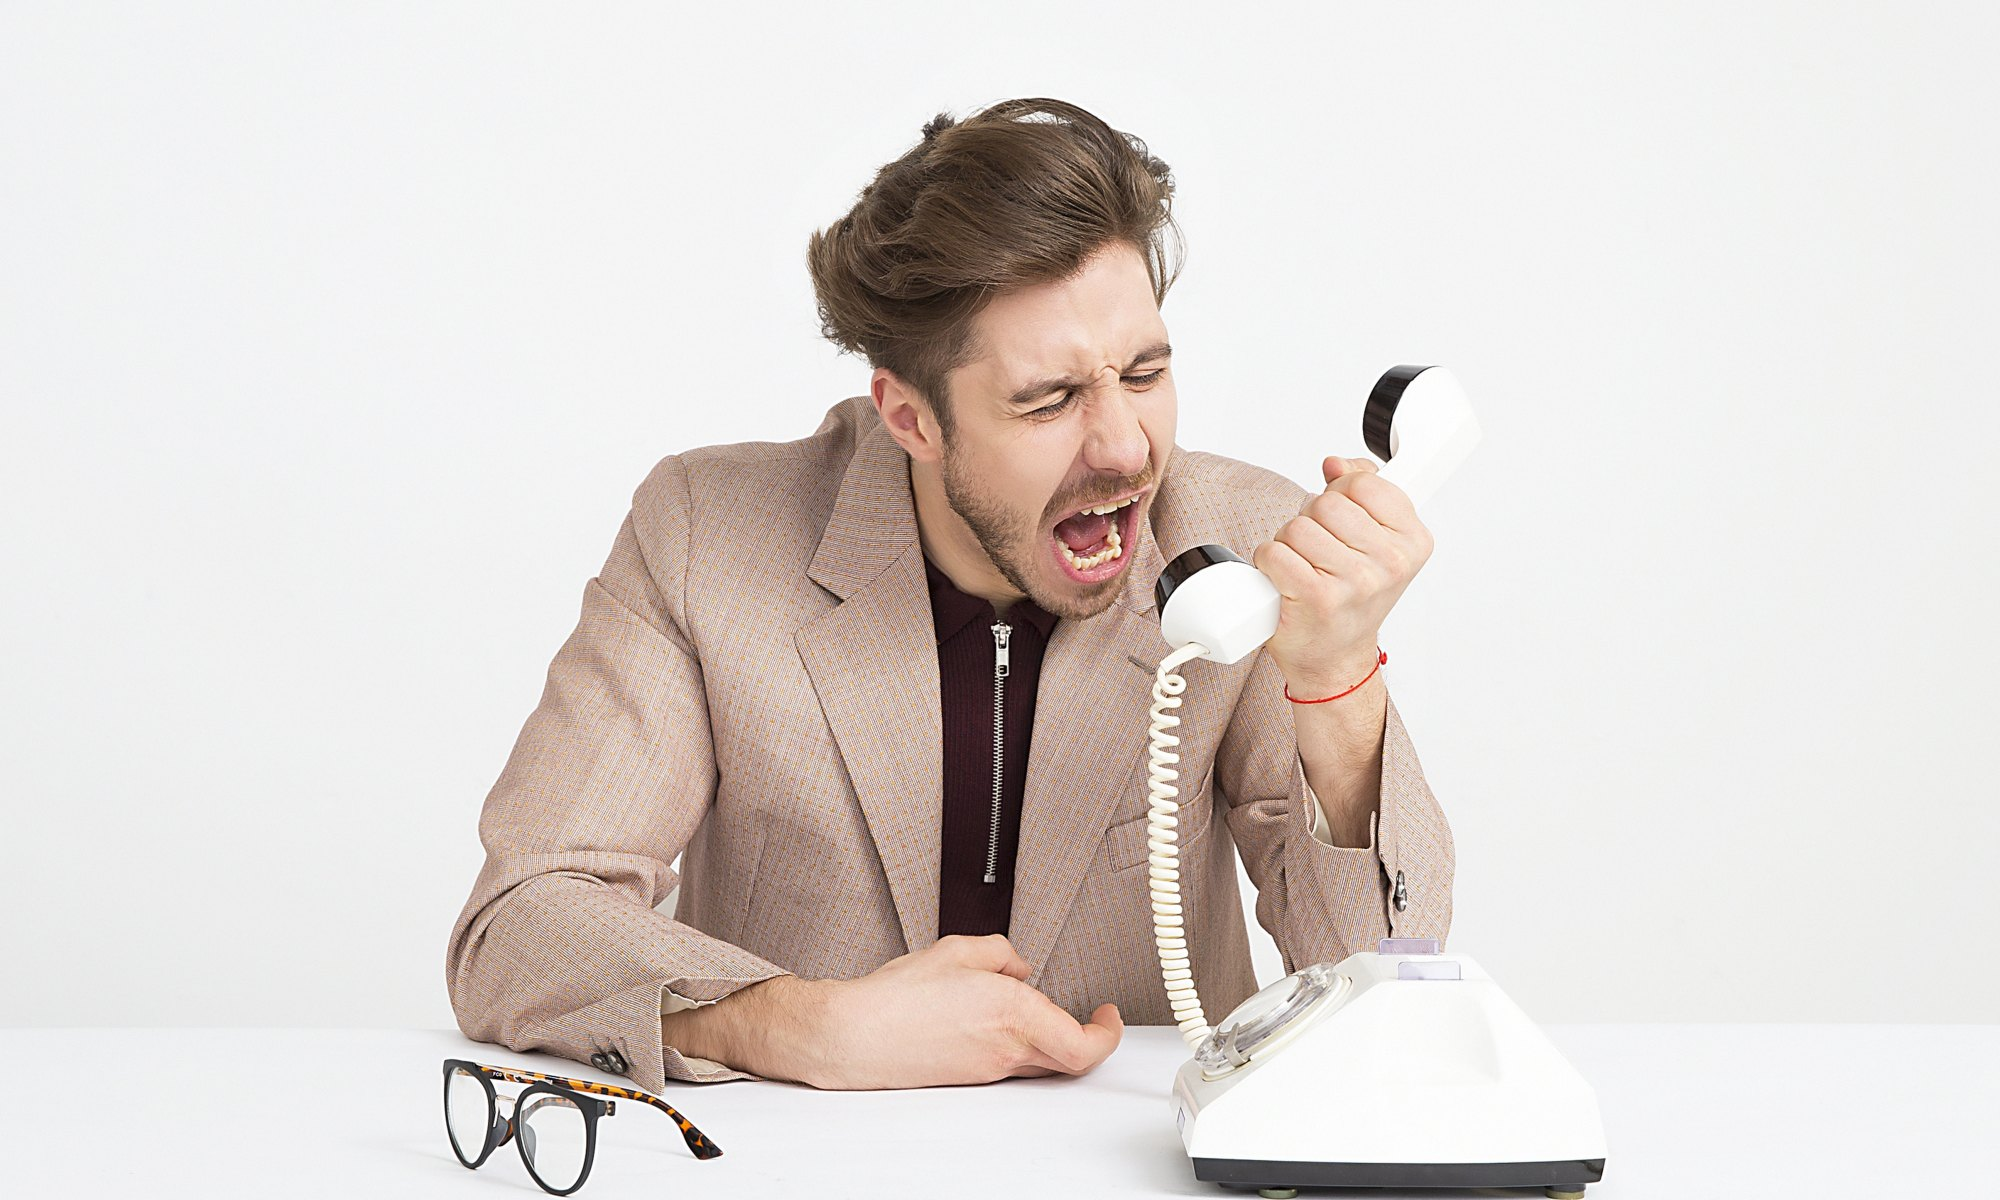 Cruel man holding telephone screaming